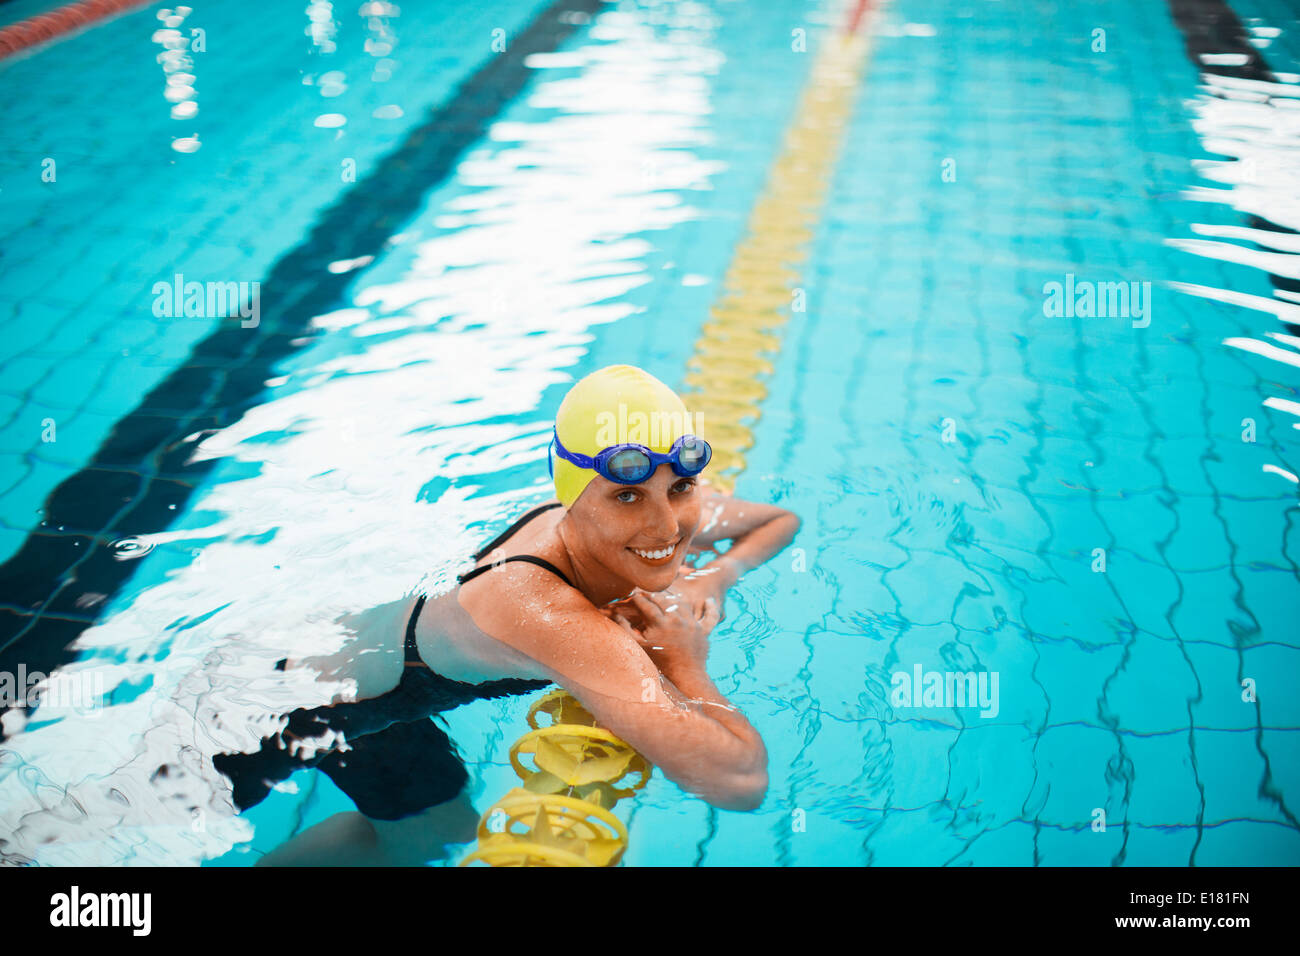 Portrait of smiling swimmer se penchant sur la natation en piscine marqueur lane Photo Stock